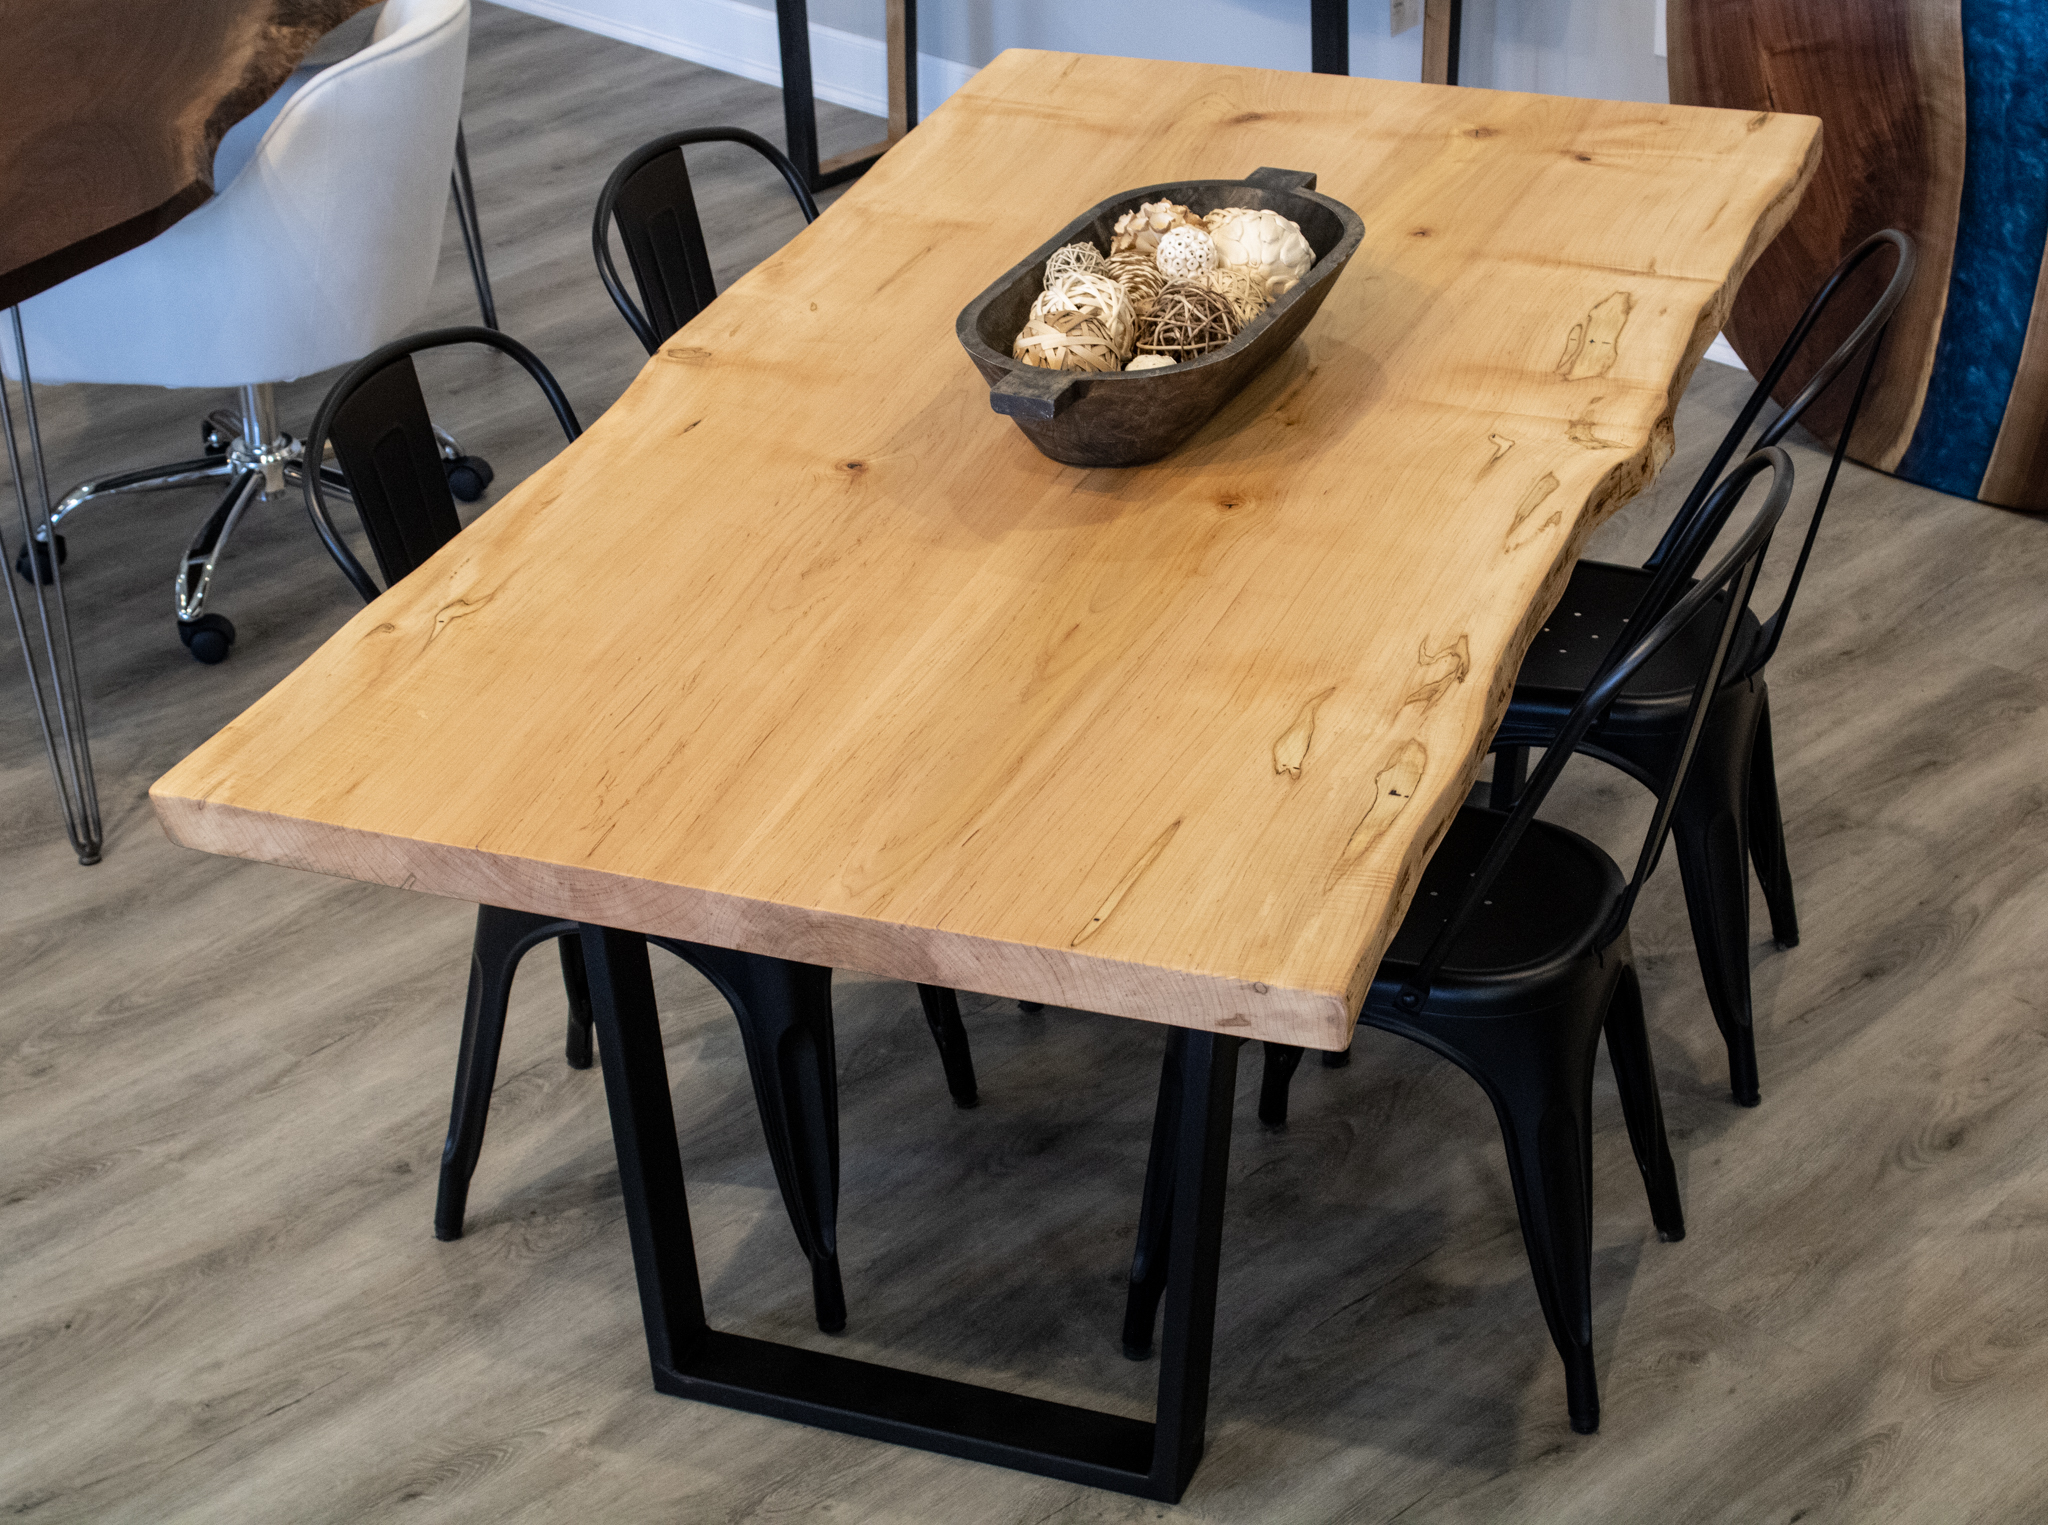 Olympic Live Edge Maple Dining Table, Maple Wood Dining Room Furniture